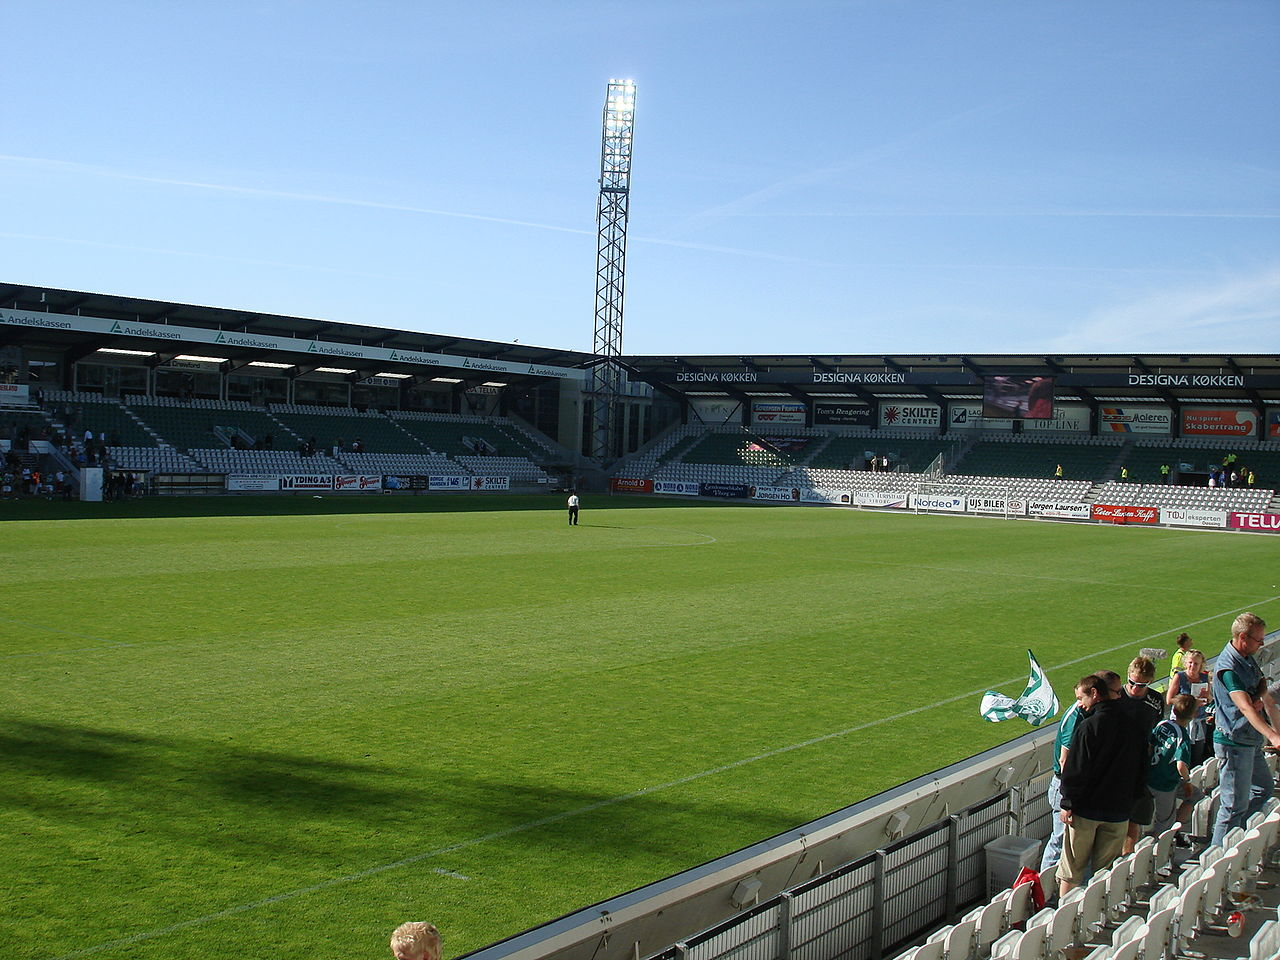 Viborg Stadium - A Historical Place Worth Seeing in Denmark